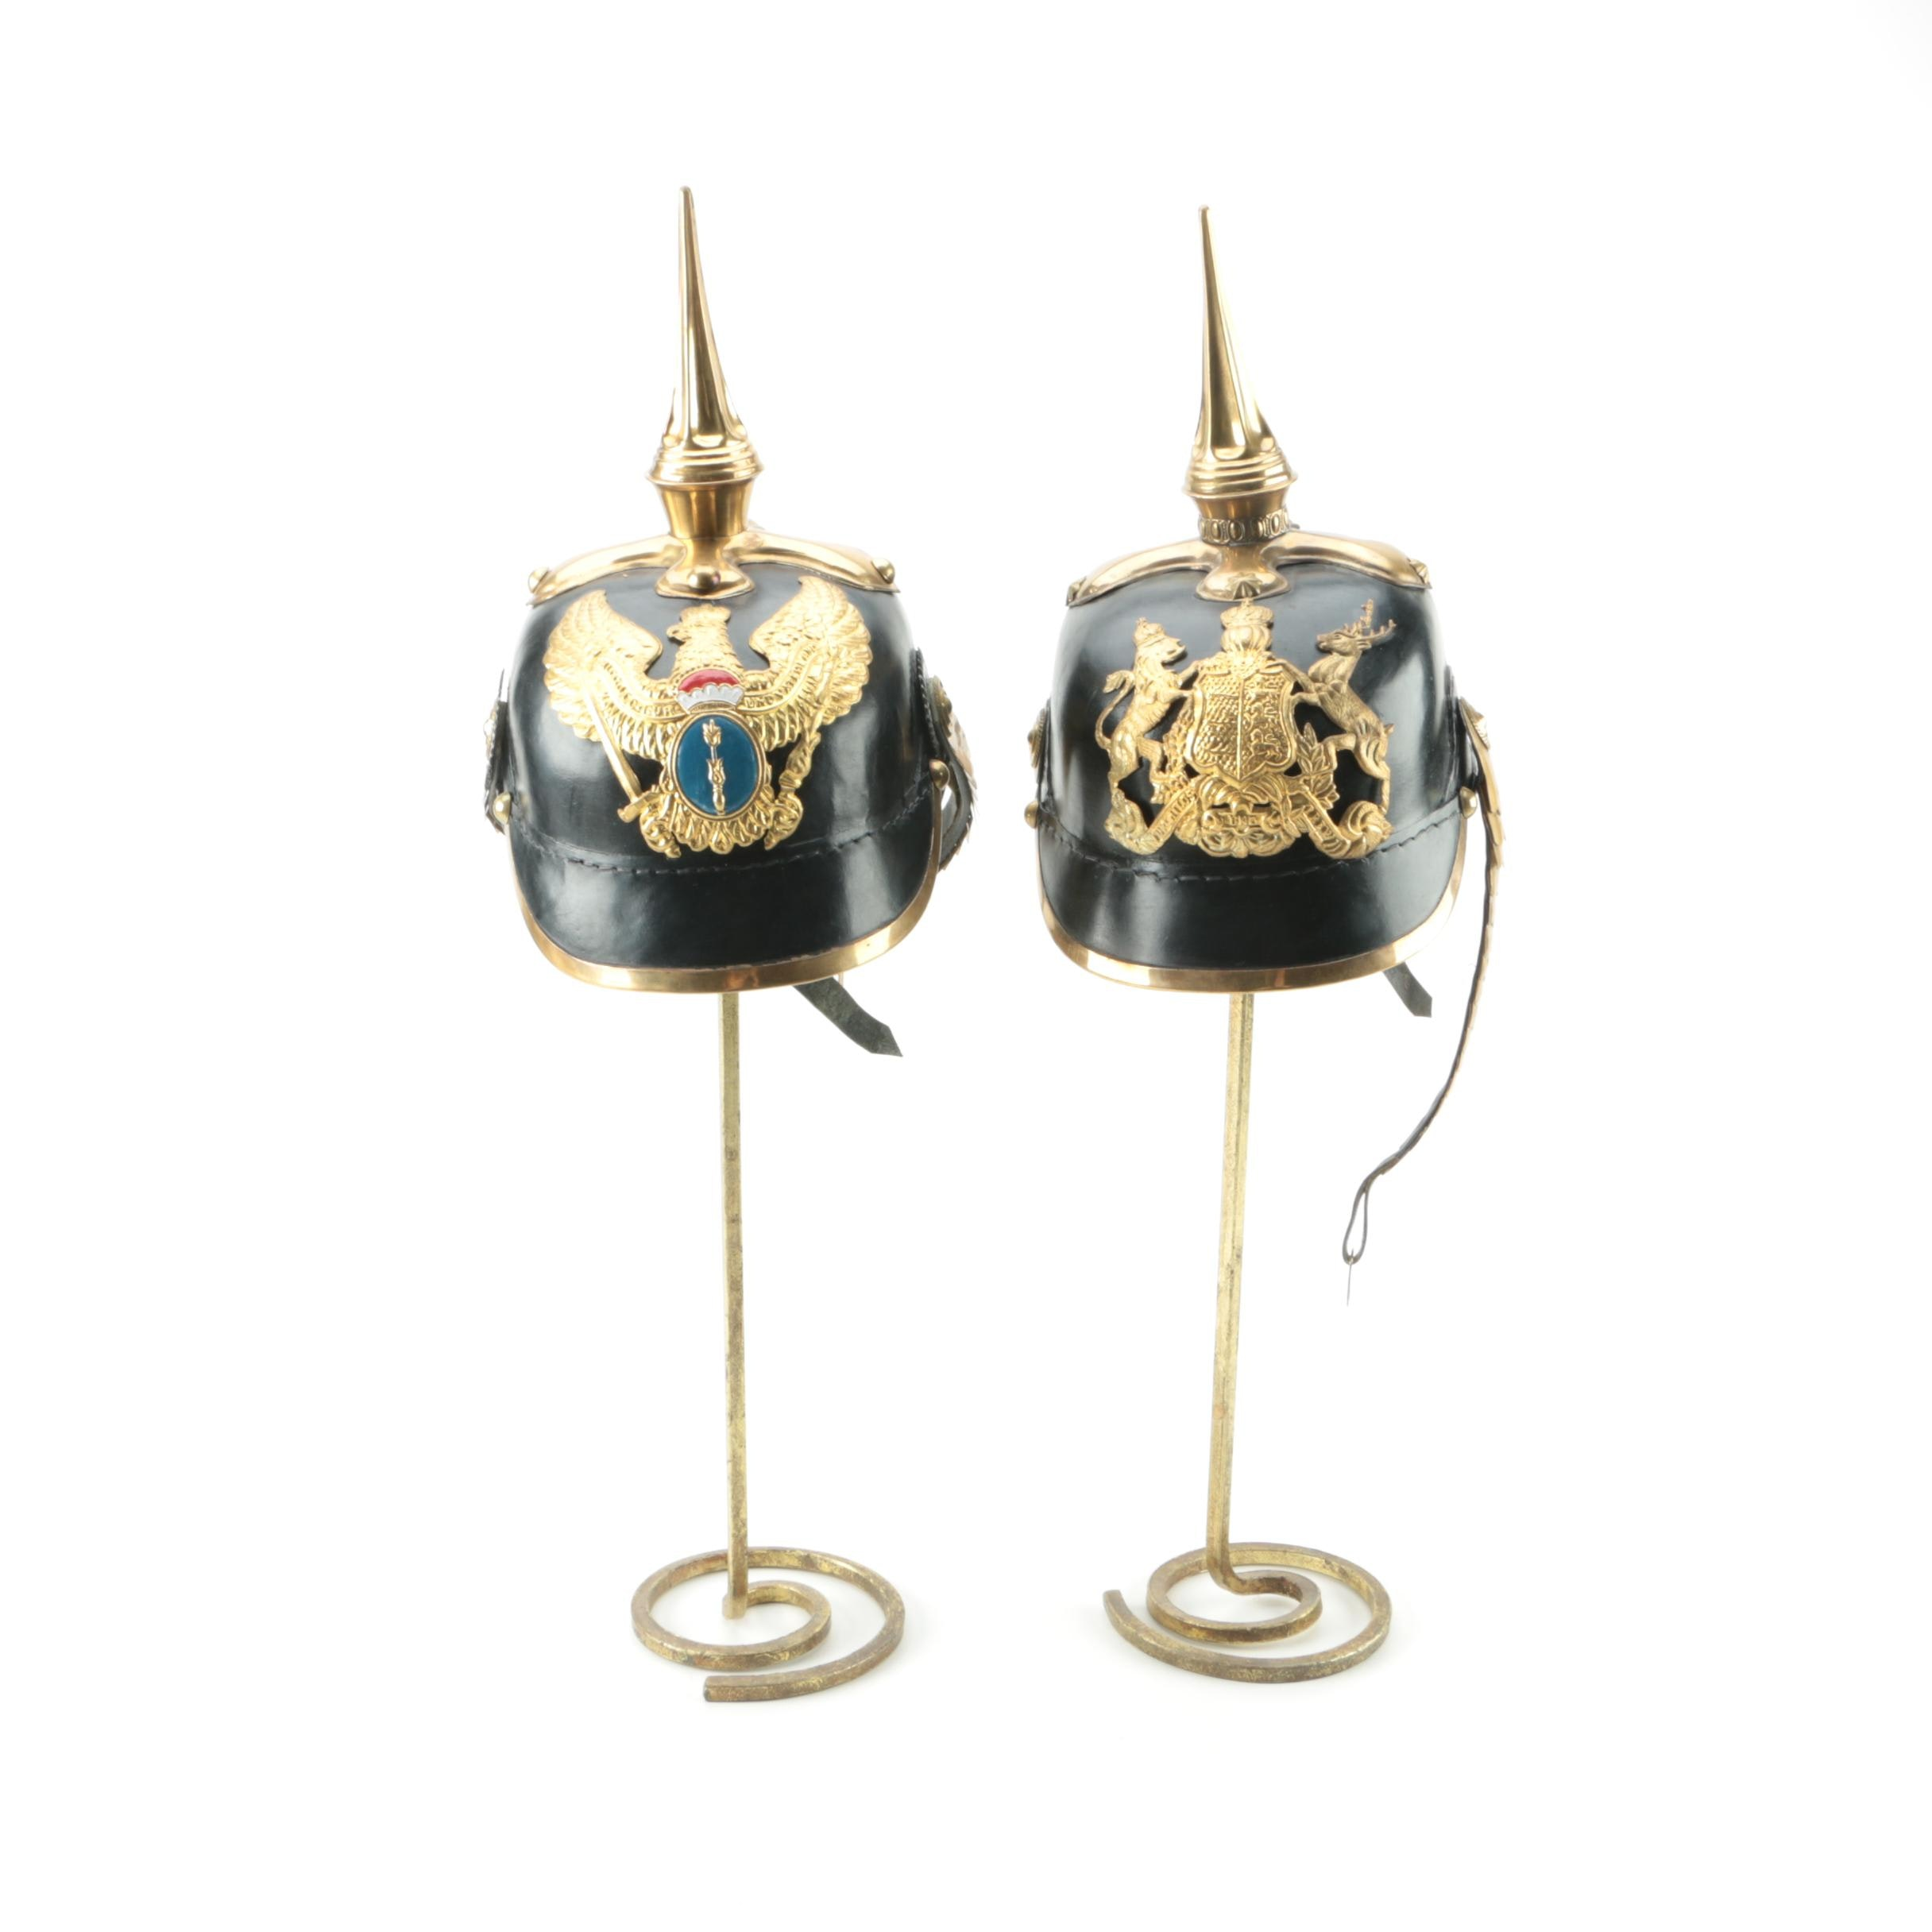 Reproduction WW1 Era Prussian Picklehaube Helmets with Stands